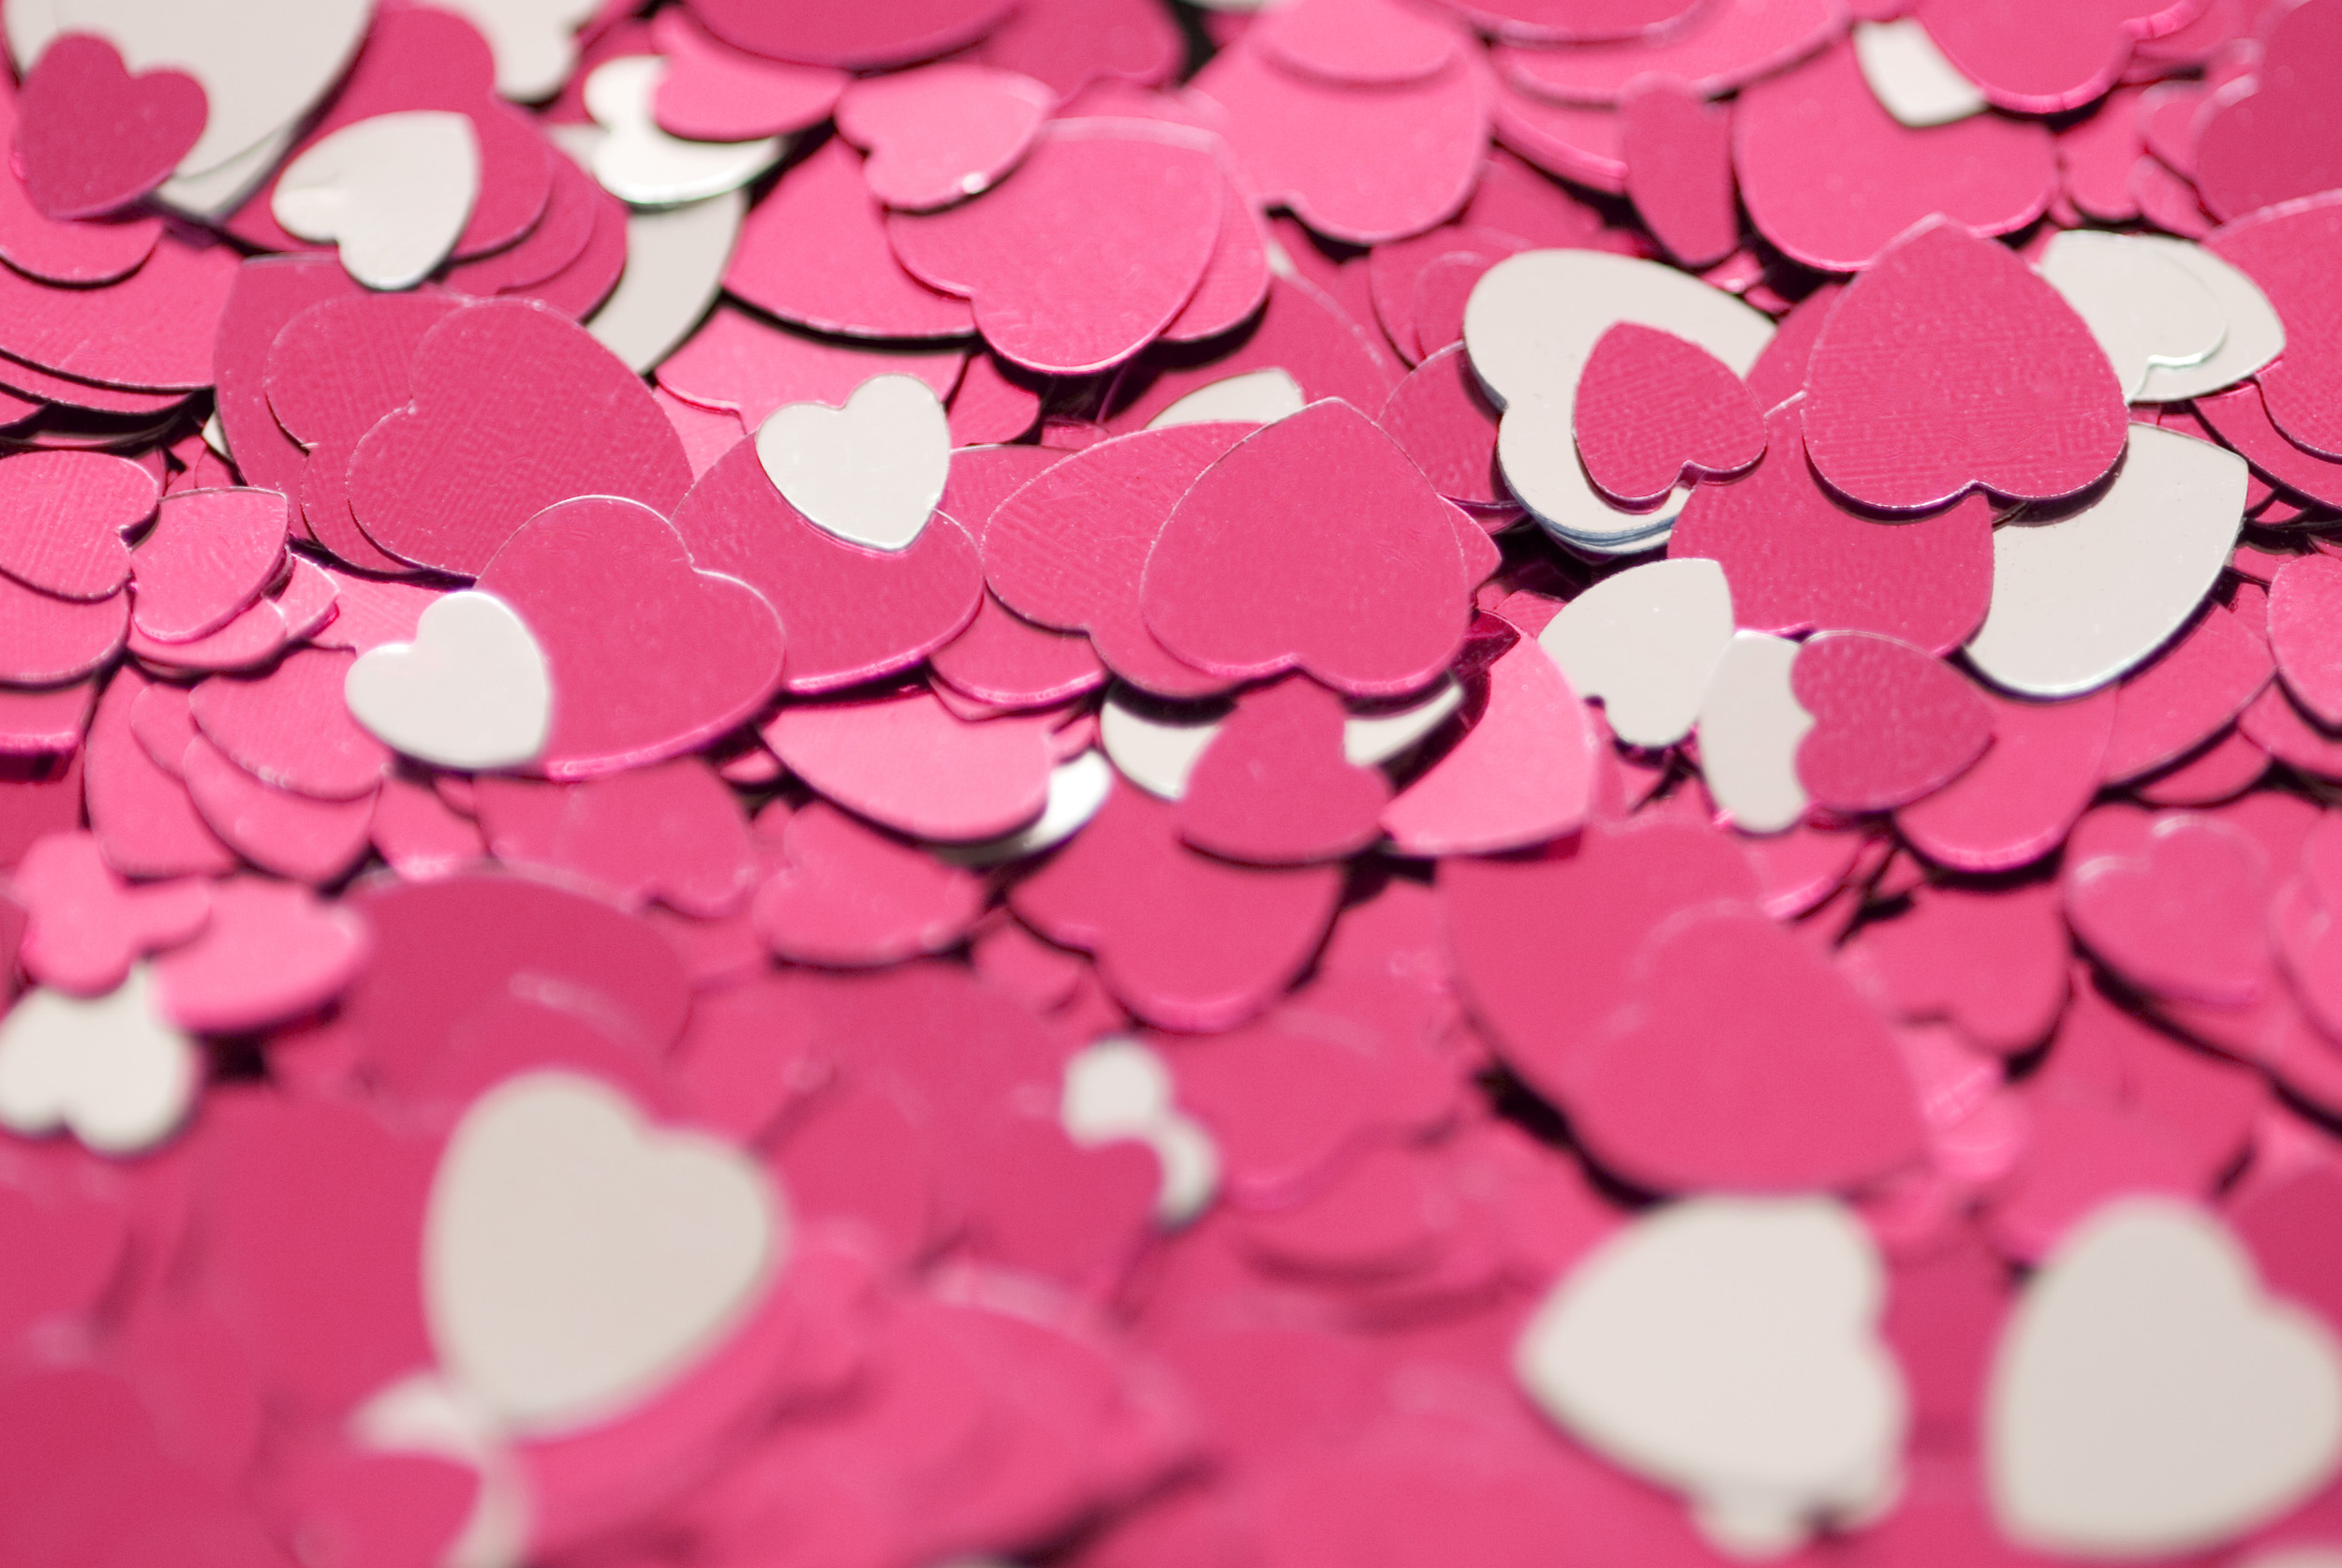 Love cute Heart Wallpaper : Download These 45 Pink Wallpapers Every Engineer Girl Will Love